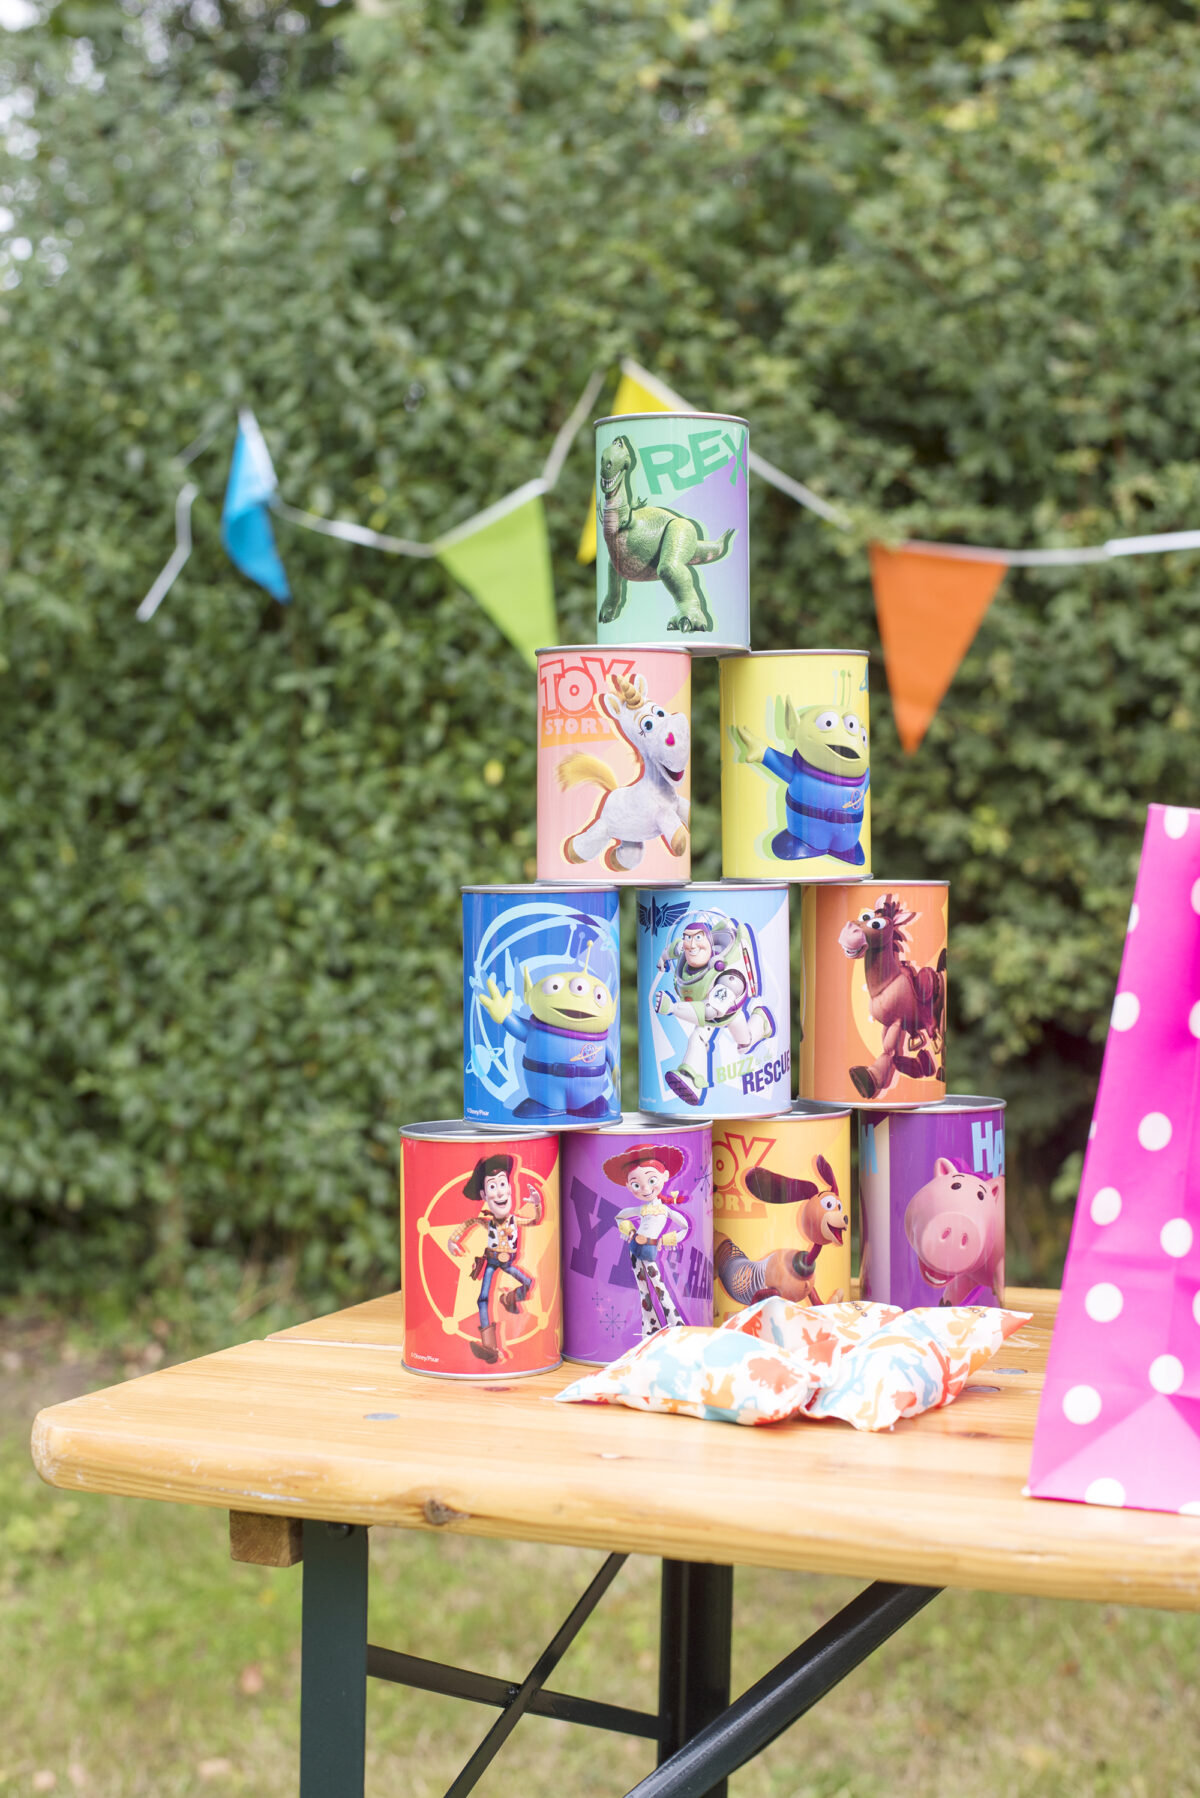 Image shows a wooden party table outside with a Toy Story themed set of knock down cans and bean bags in bright colours.  The table is outdoors in a field.